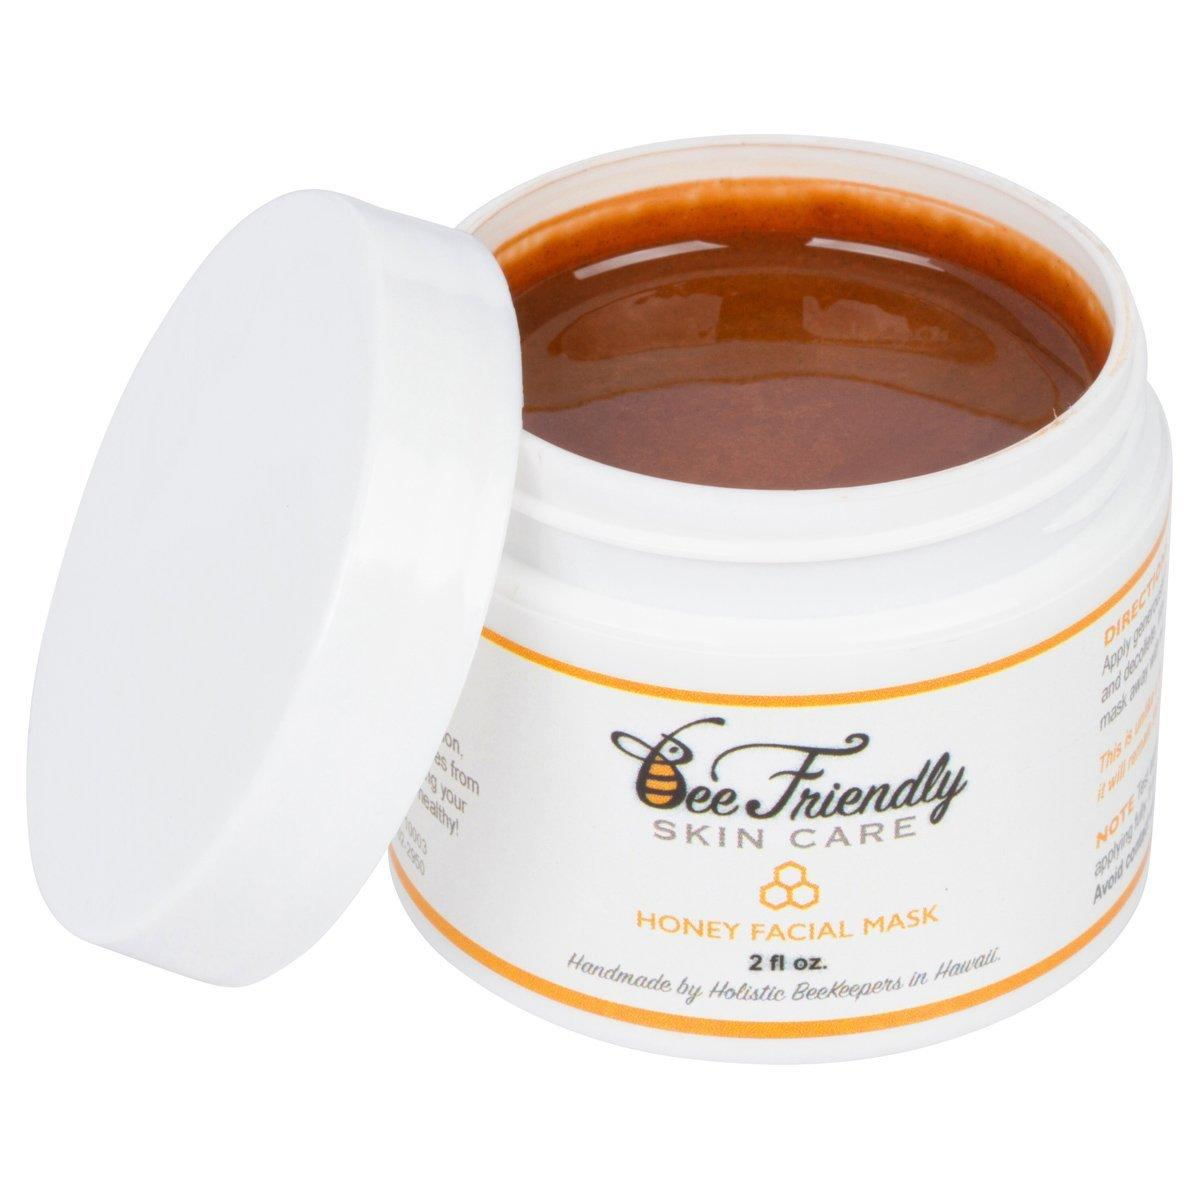 Honey Facial Mask 100% All Natural Raw Honey, French Pink Clay Revitalizing Face Mask by BeeFriendly